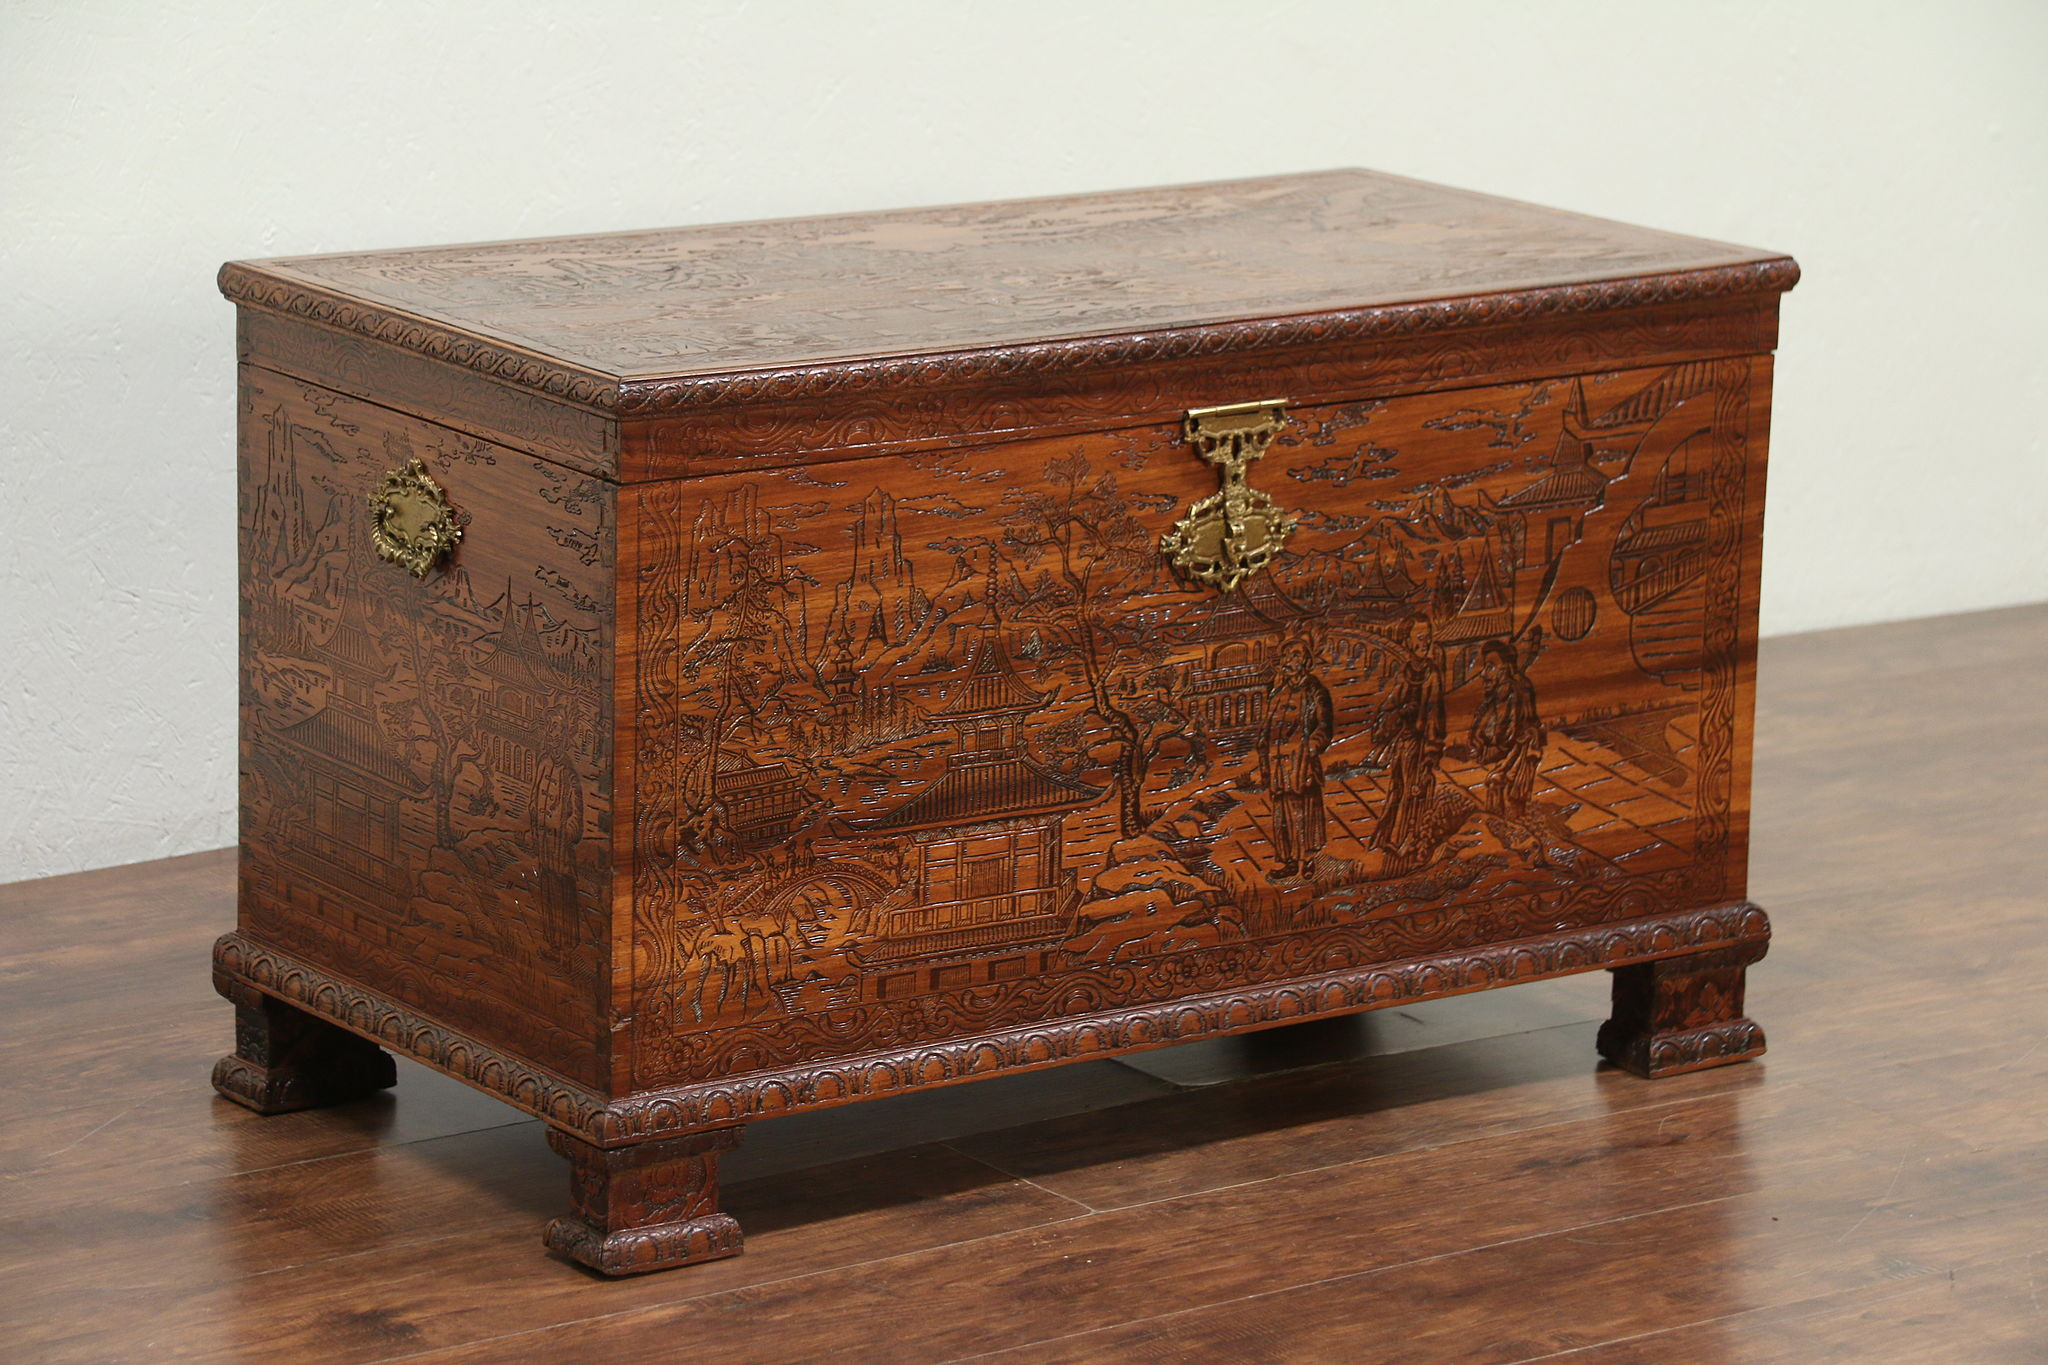 Chinese Vintage Carved Trunk, Blanket Or Dowry Chest Or Coffee